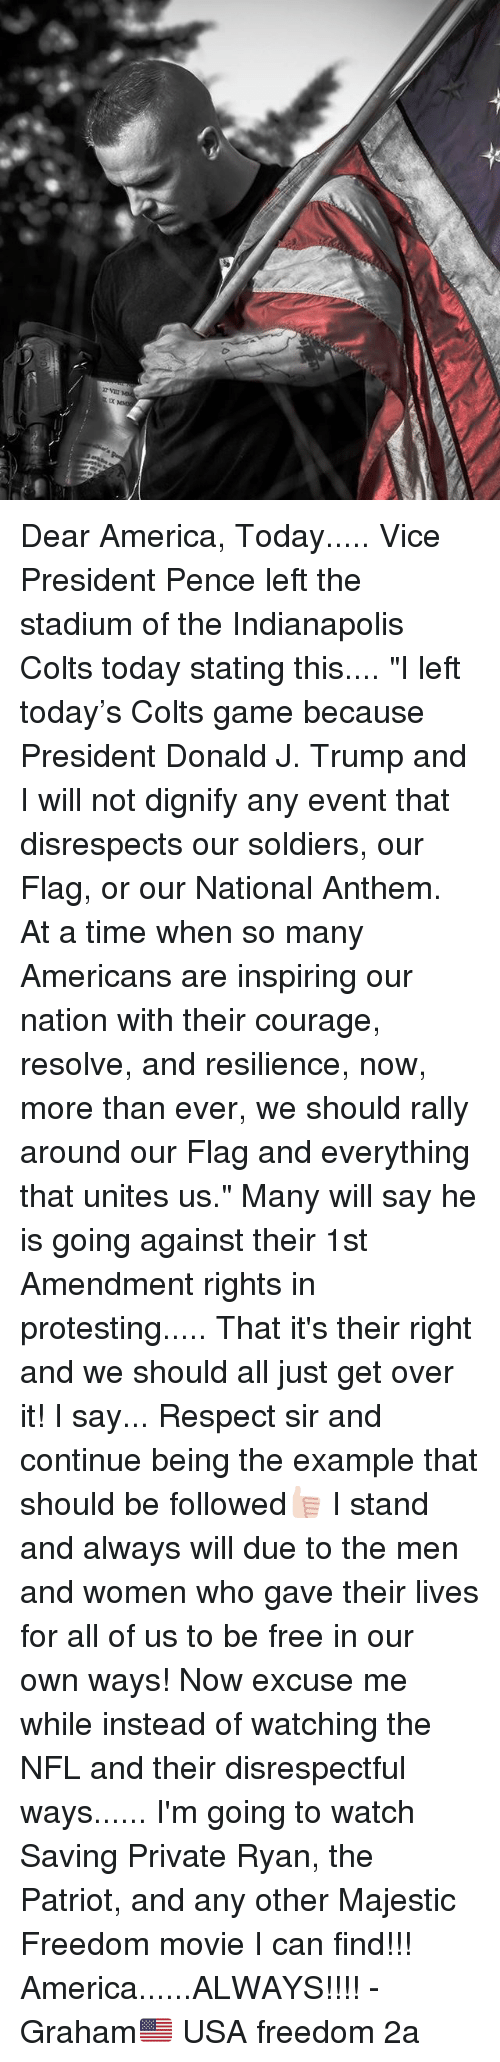 "Indianapolis Colts: Dear America, Today..... Vice President Pence left the stadium of the Indianapolis Colts today stating this.... ""I left today's Colts game because President Donald J. Trump and I will not dignify any event that disrespects our soldiers, our Flag, or our National Anthem. At a time when so many Americans are inspiring our nation with their courage, resolve, and resilience, now, more than ever, we should rally around our Flag and everything that unites us."" Many will say he is going against their 1st Amendment rights in protesting..... That it's their right and we should all just get over it! I say... Respect sir and continue being the example that should be followed👍🏻 I stand and always will due to the men and women who gave their lives for all of us to be free in our own ways! Now excuse me while instead of watching the NFL and their disrespectful ways...... I'm going to watch Saving Private Ryan, the Patriot, and any other Majestic Freedom movie I can find!!! America......ALWAYS!!!! -Graham🇺🇸 USA freedom 2a"